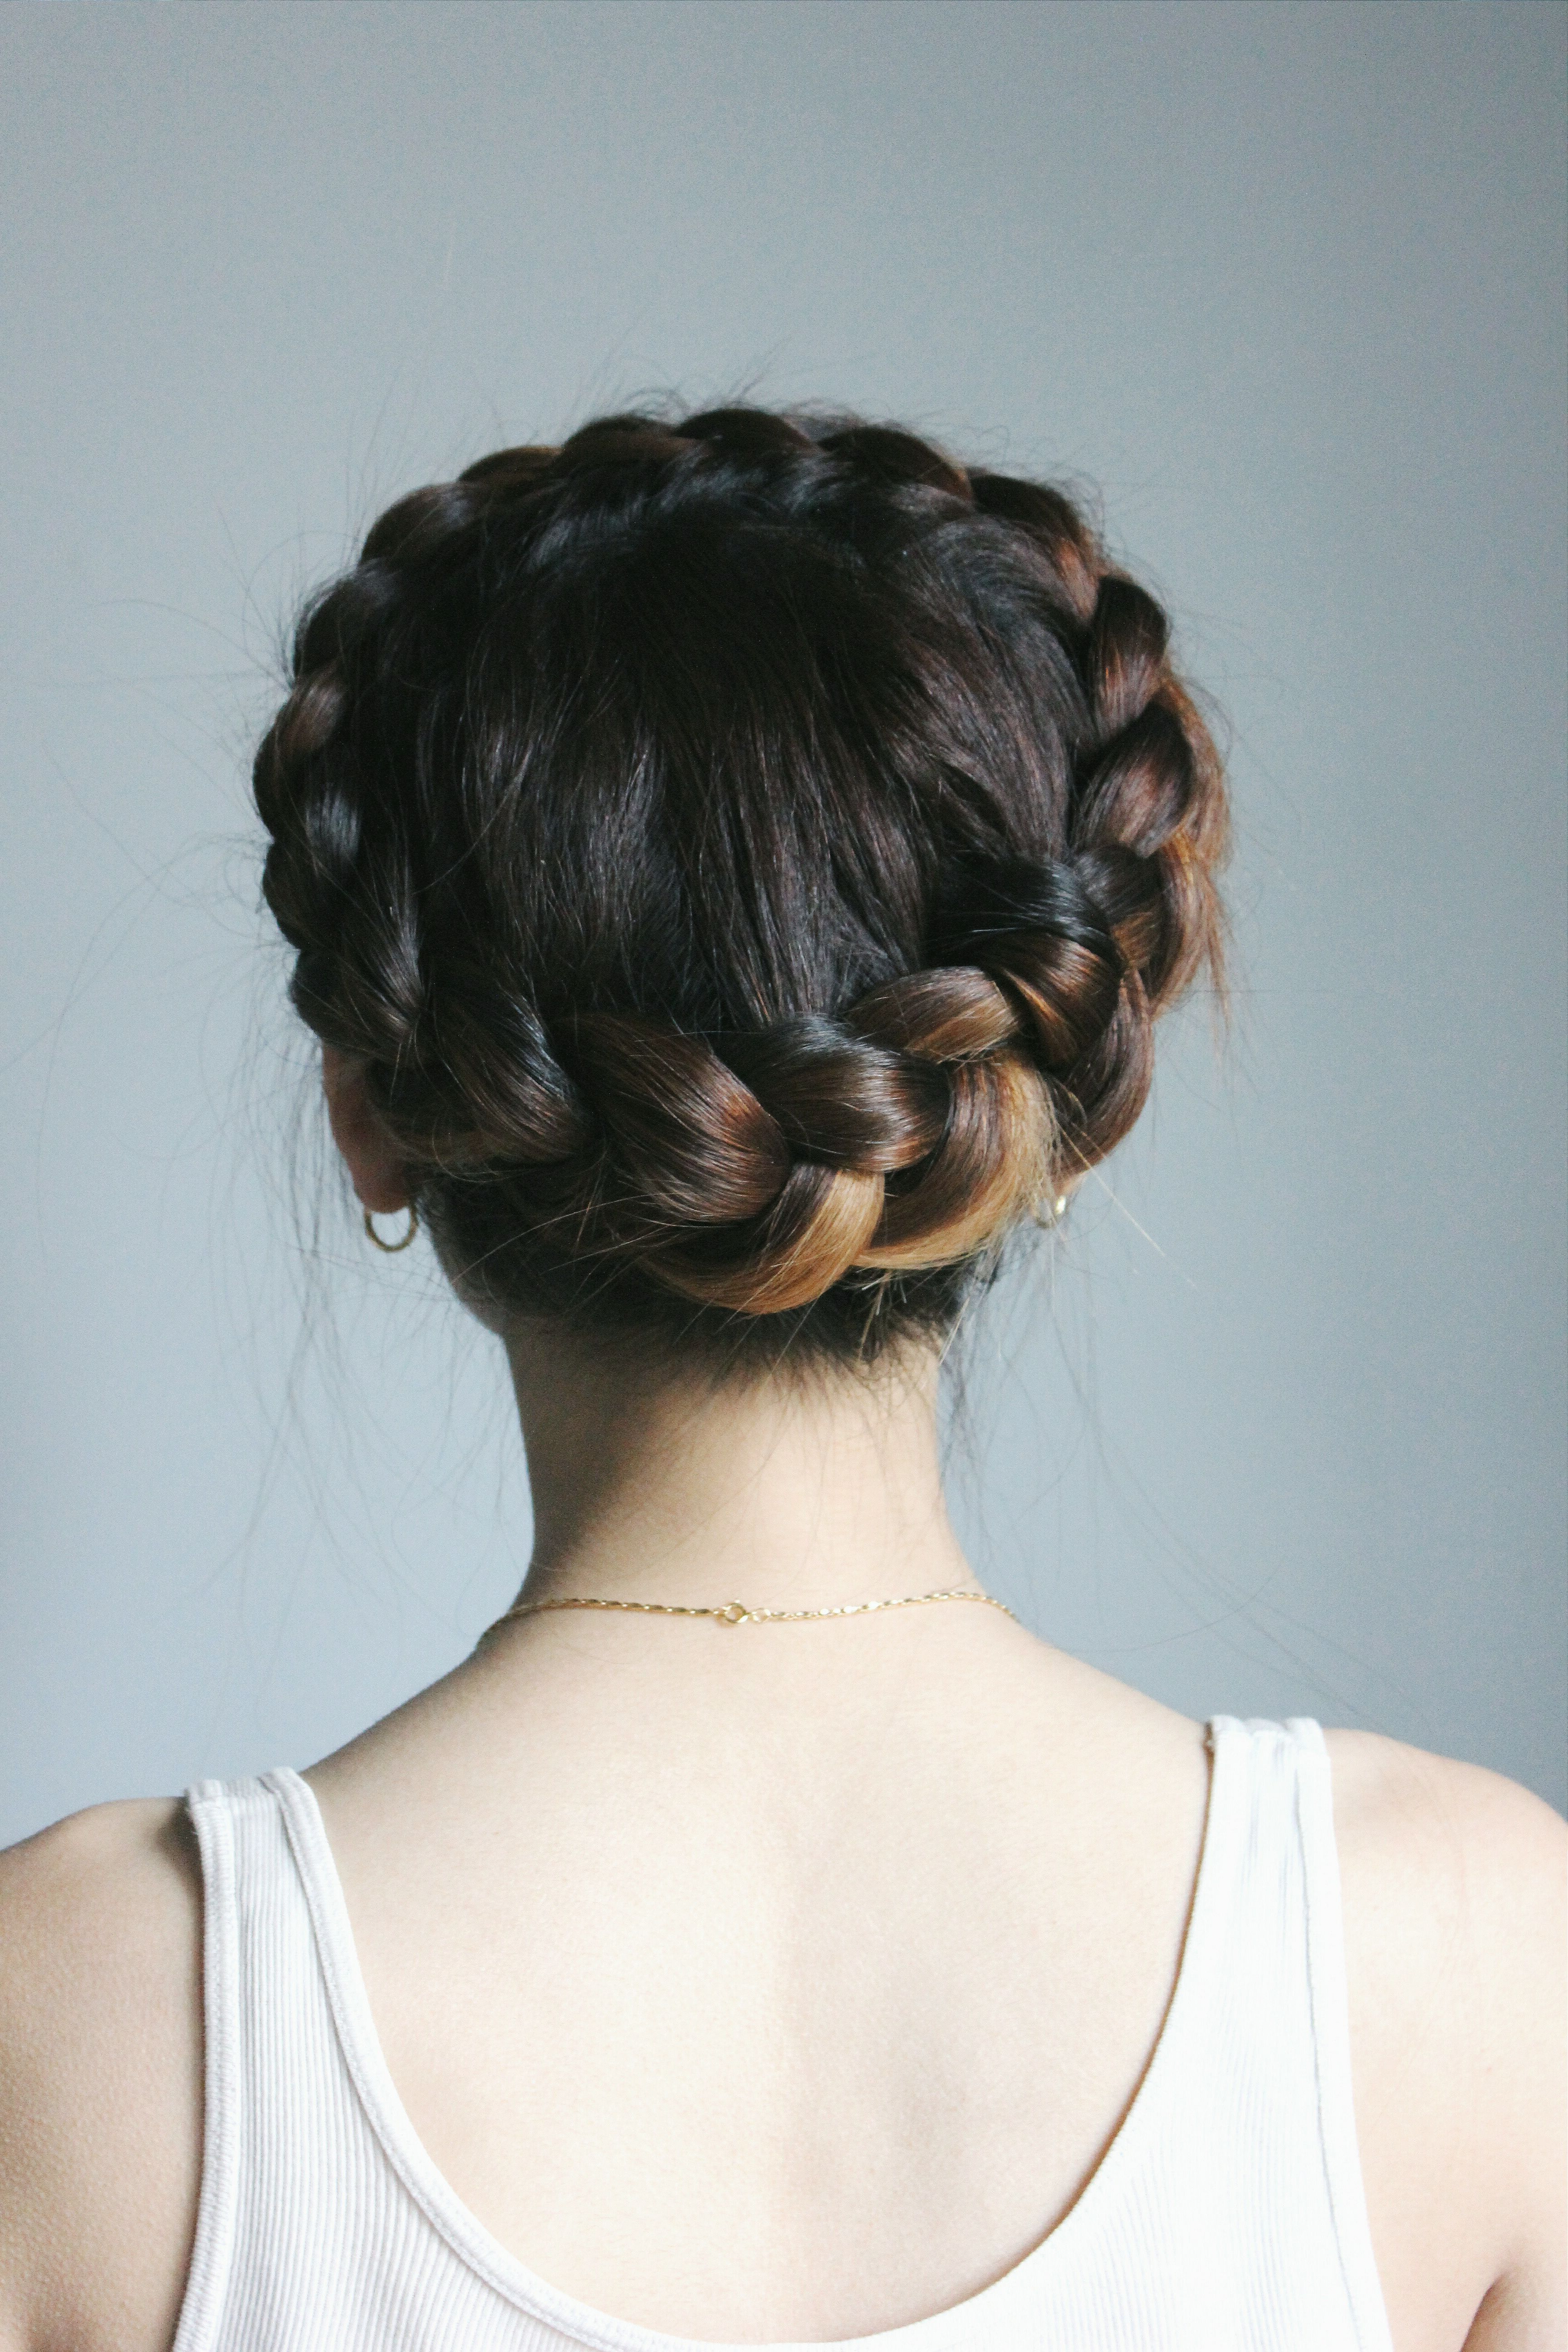 Well Known Traditional Halo Braided Hairstyles With Flowers For I (View 4 of 20)